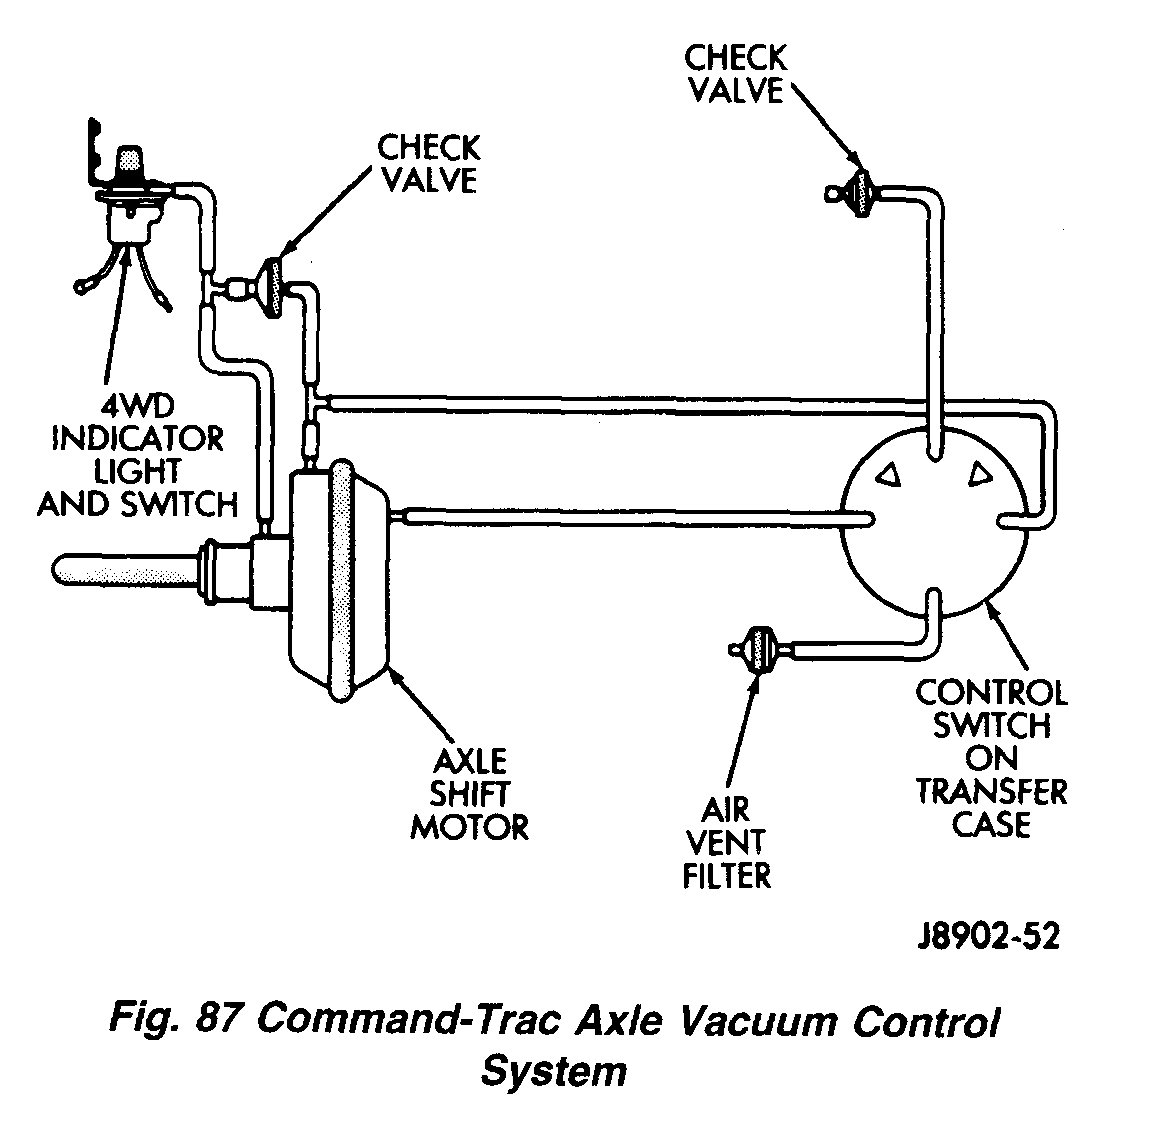 Jeep Wrangler Vacuum Line Diagram